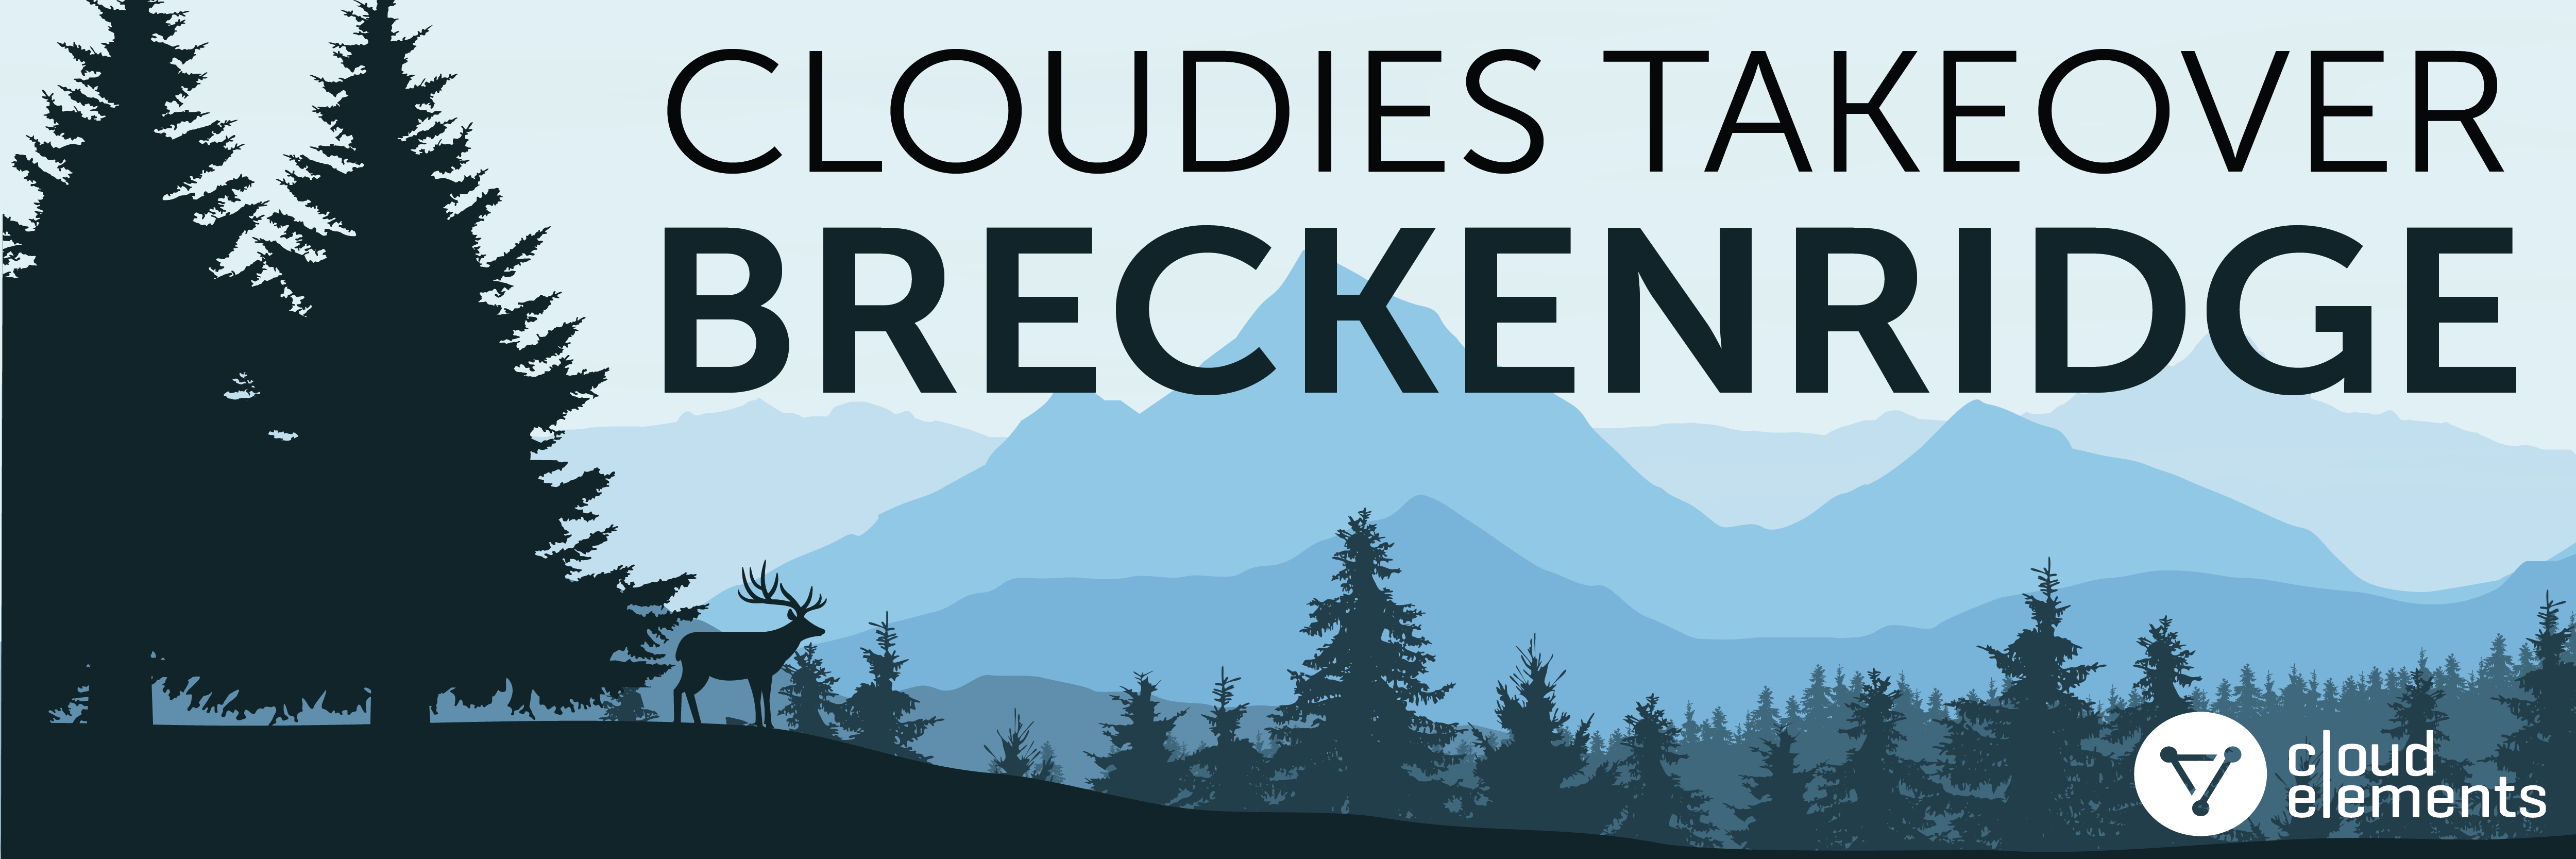 Cloudies Takeover Breckenridge Banner